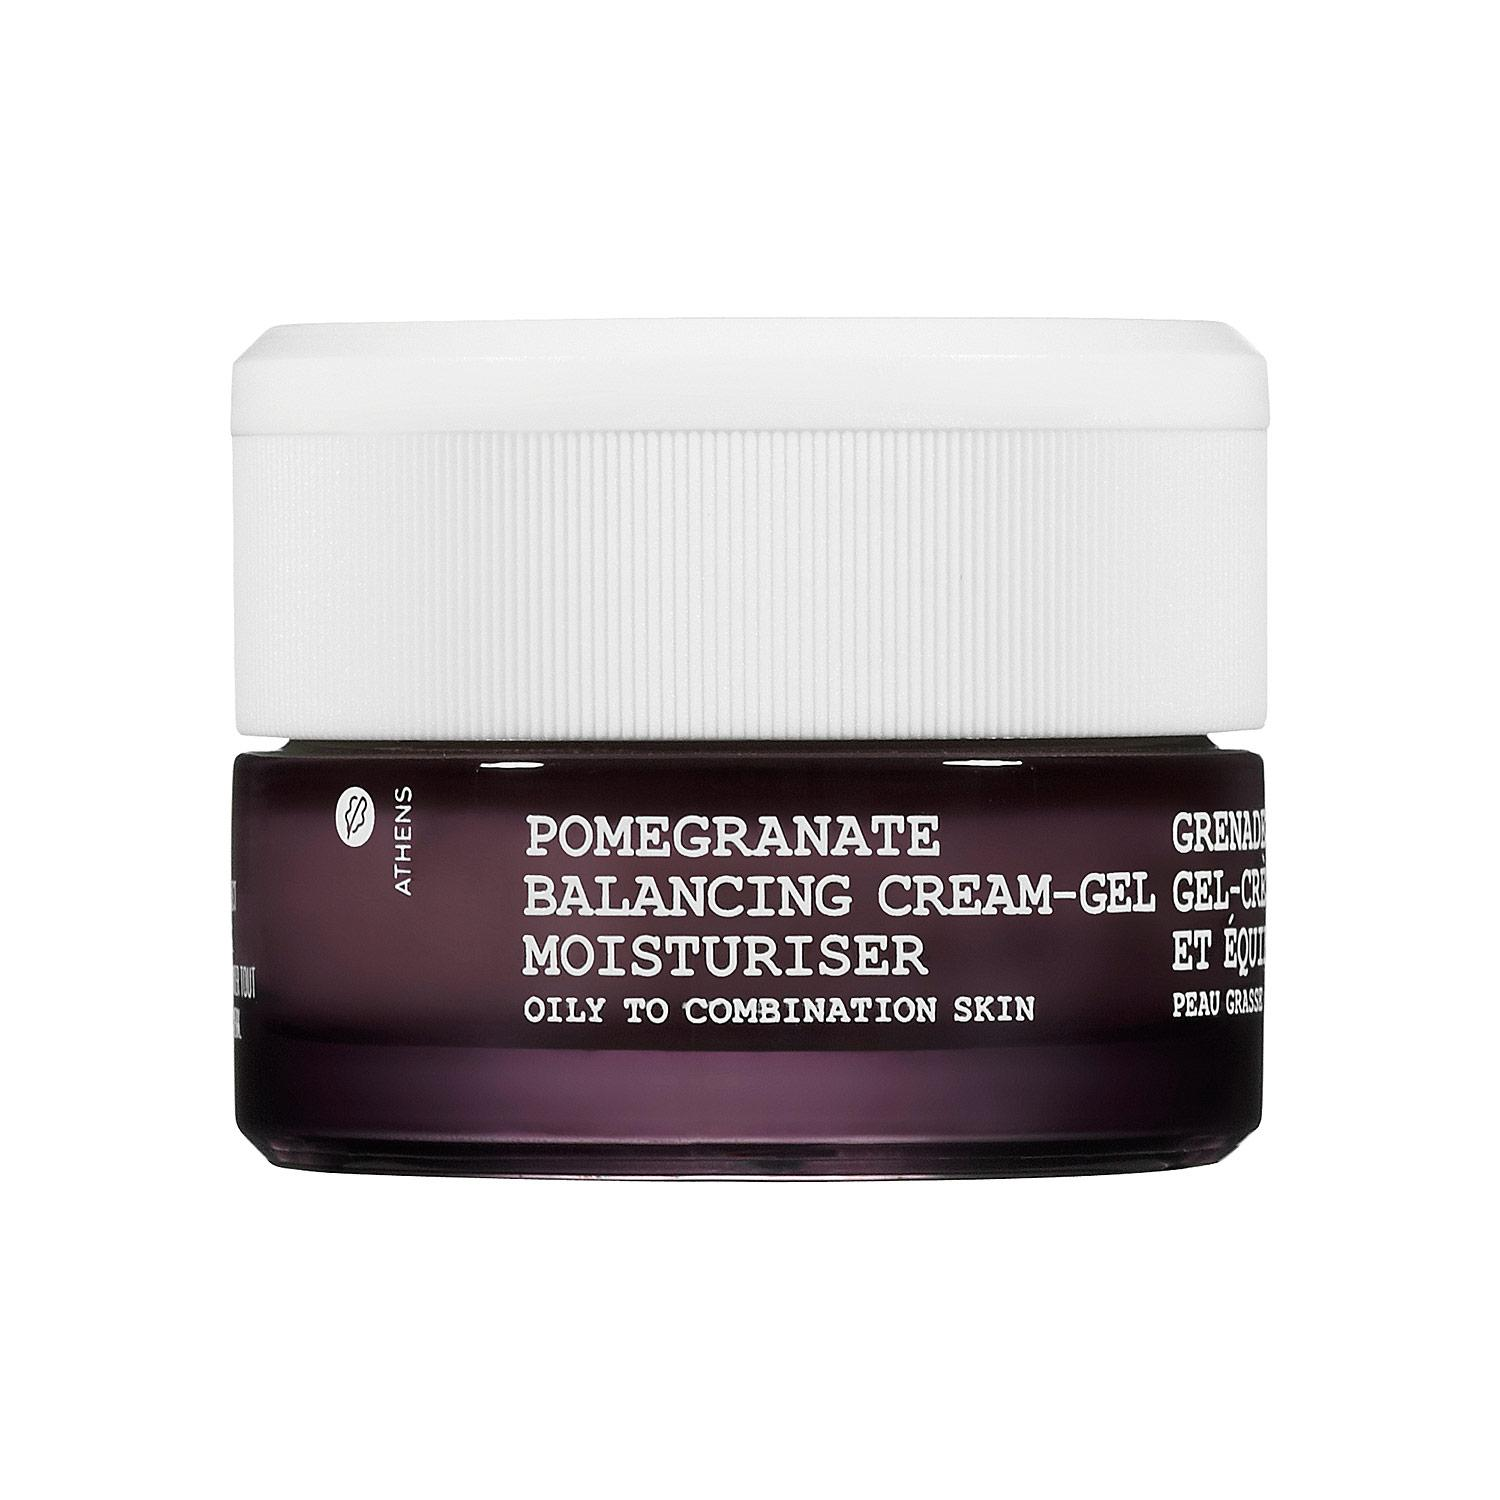 Pomegranate Balancing Cream-Gel Moisturiser